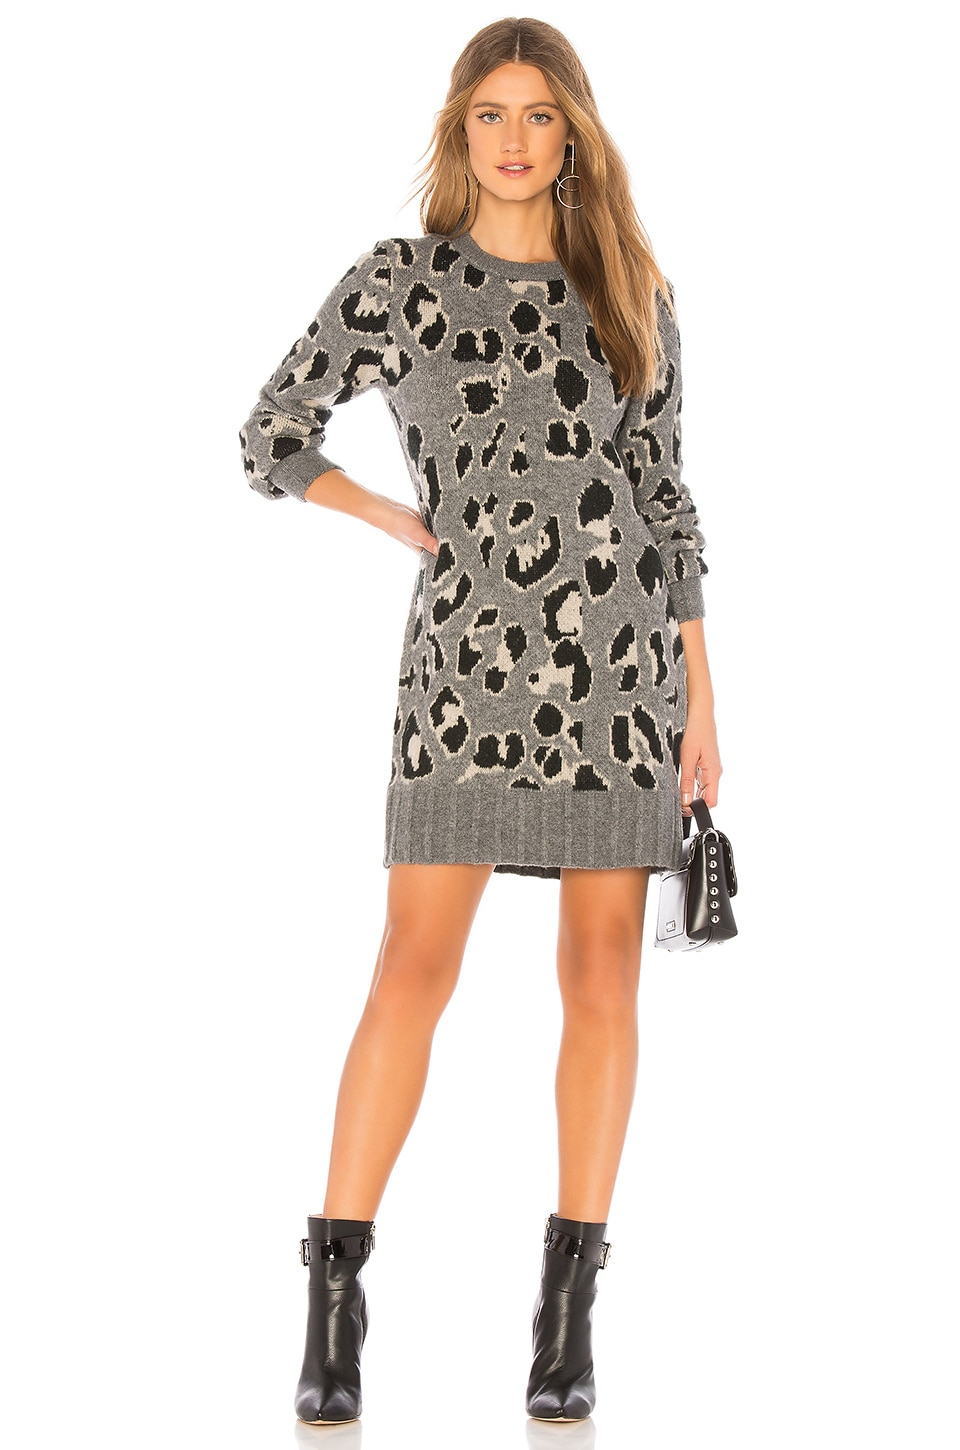 Speak Up Sweater Dress